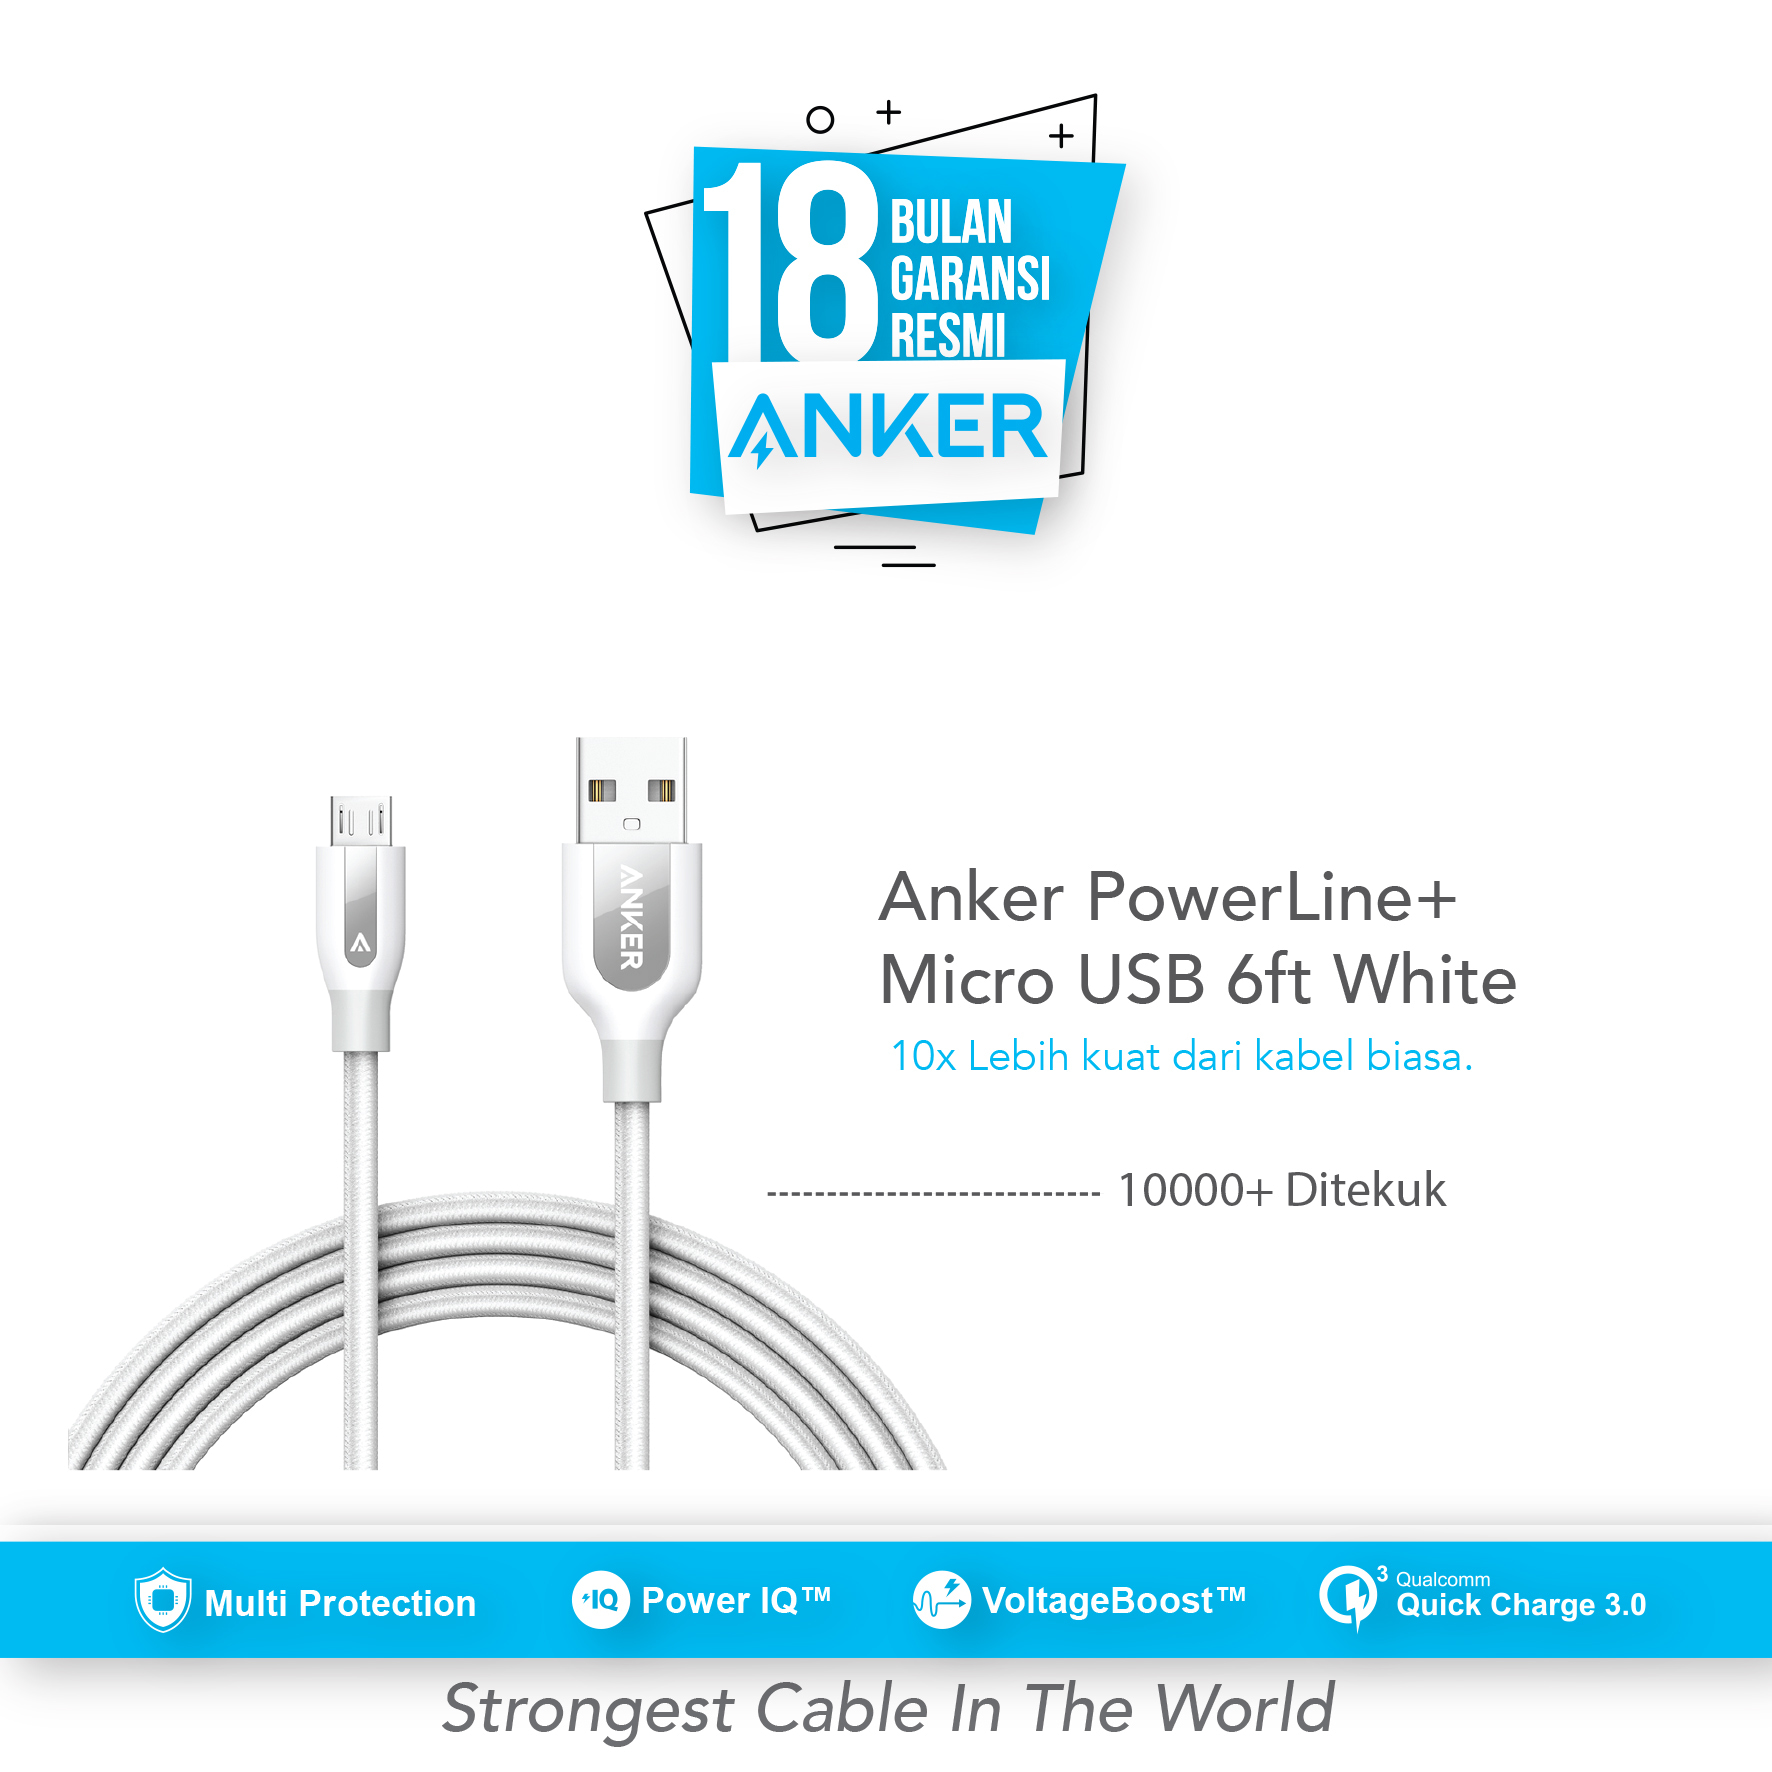 Anker Powerline Usb C To A 30 3ft90cm Red A8168h91 Daftar 3ft White A8163021 Micro Cable 6ft 18m A8143h21